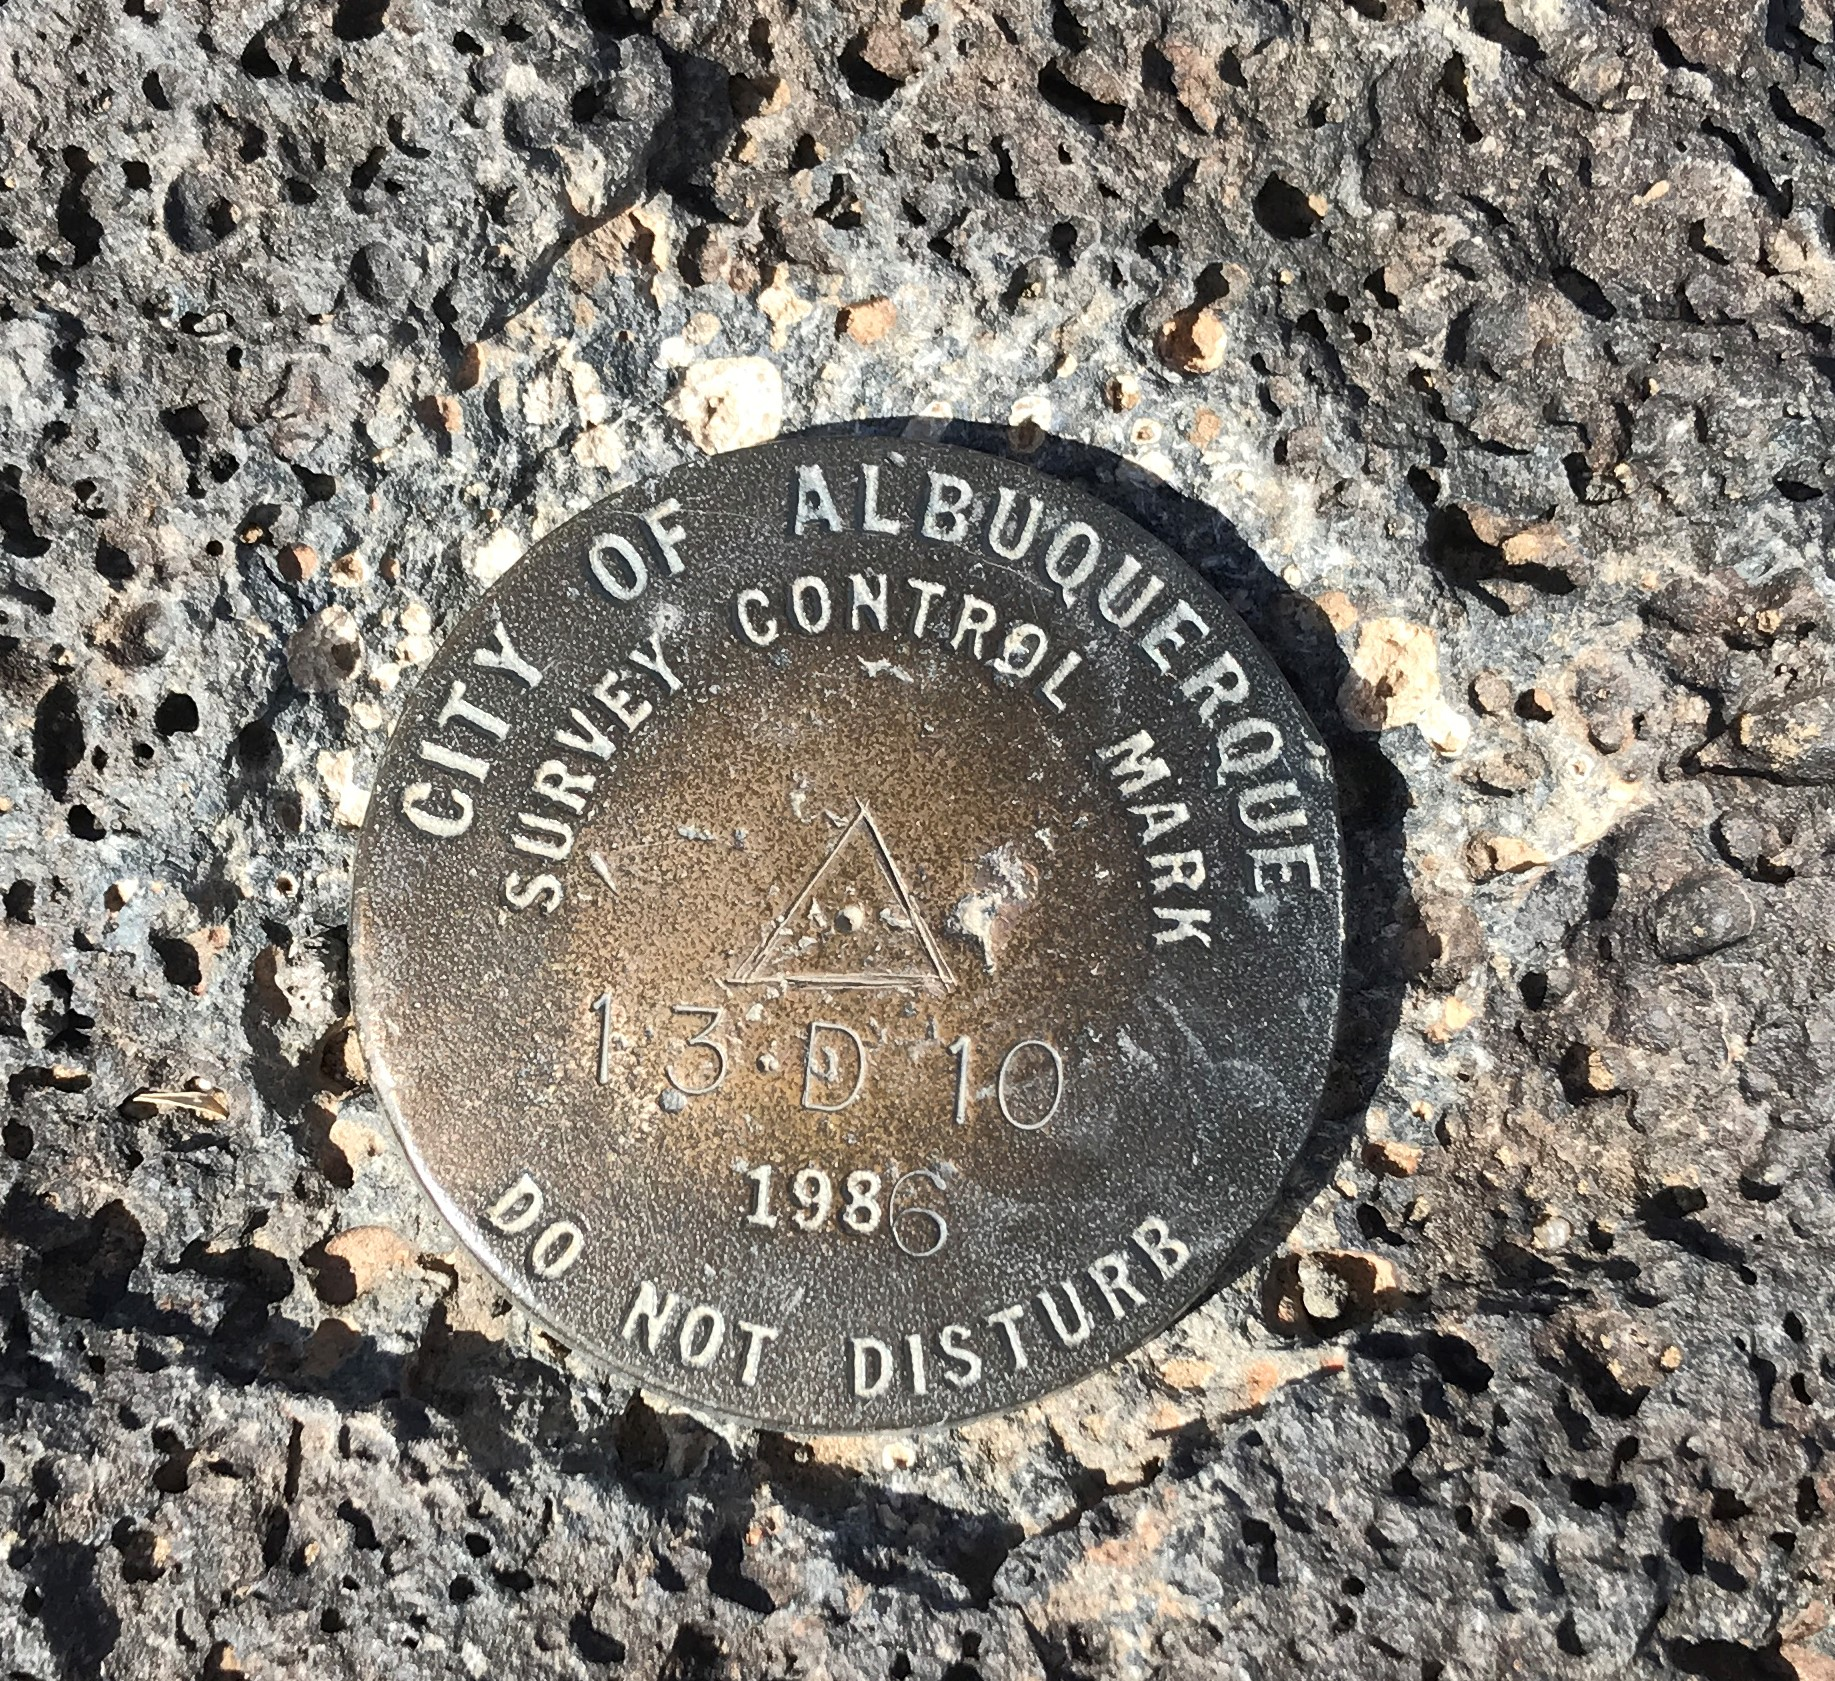 Boca Negra Canyon. Our second survey mark. We found one in the Grand Canyon. How many will we find on our adventures?